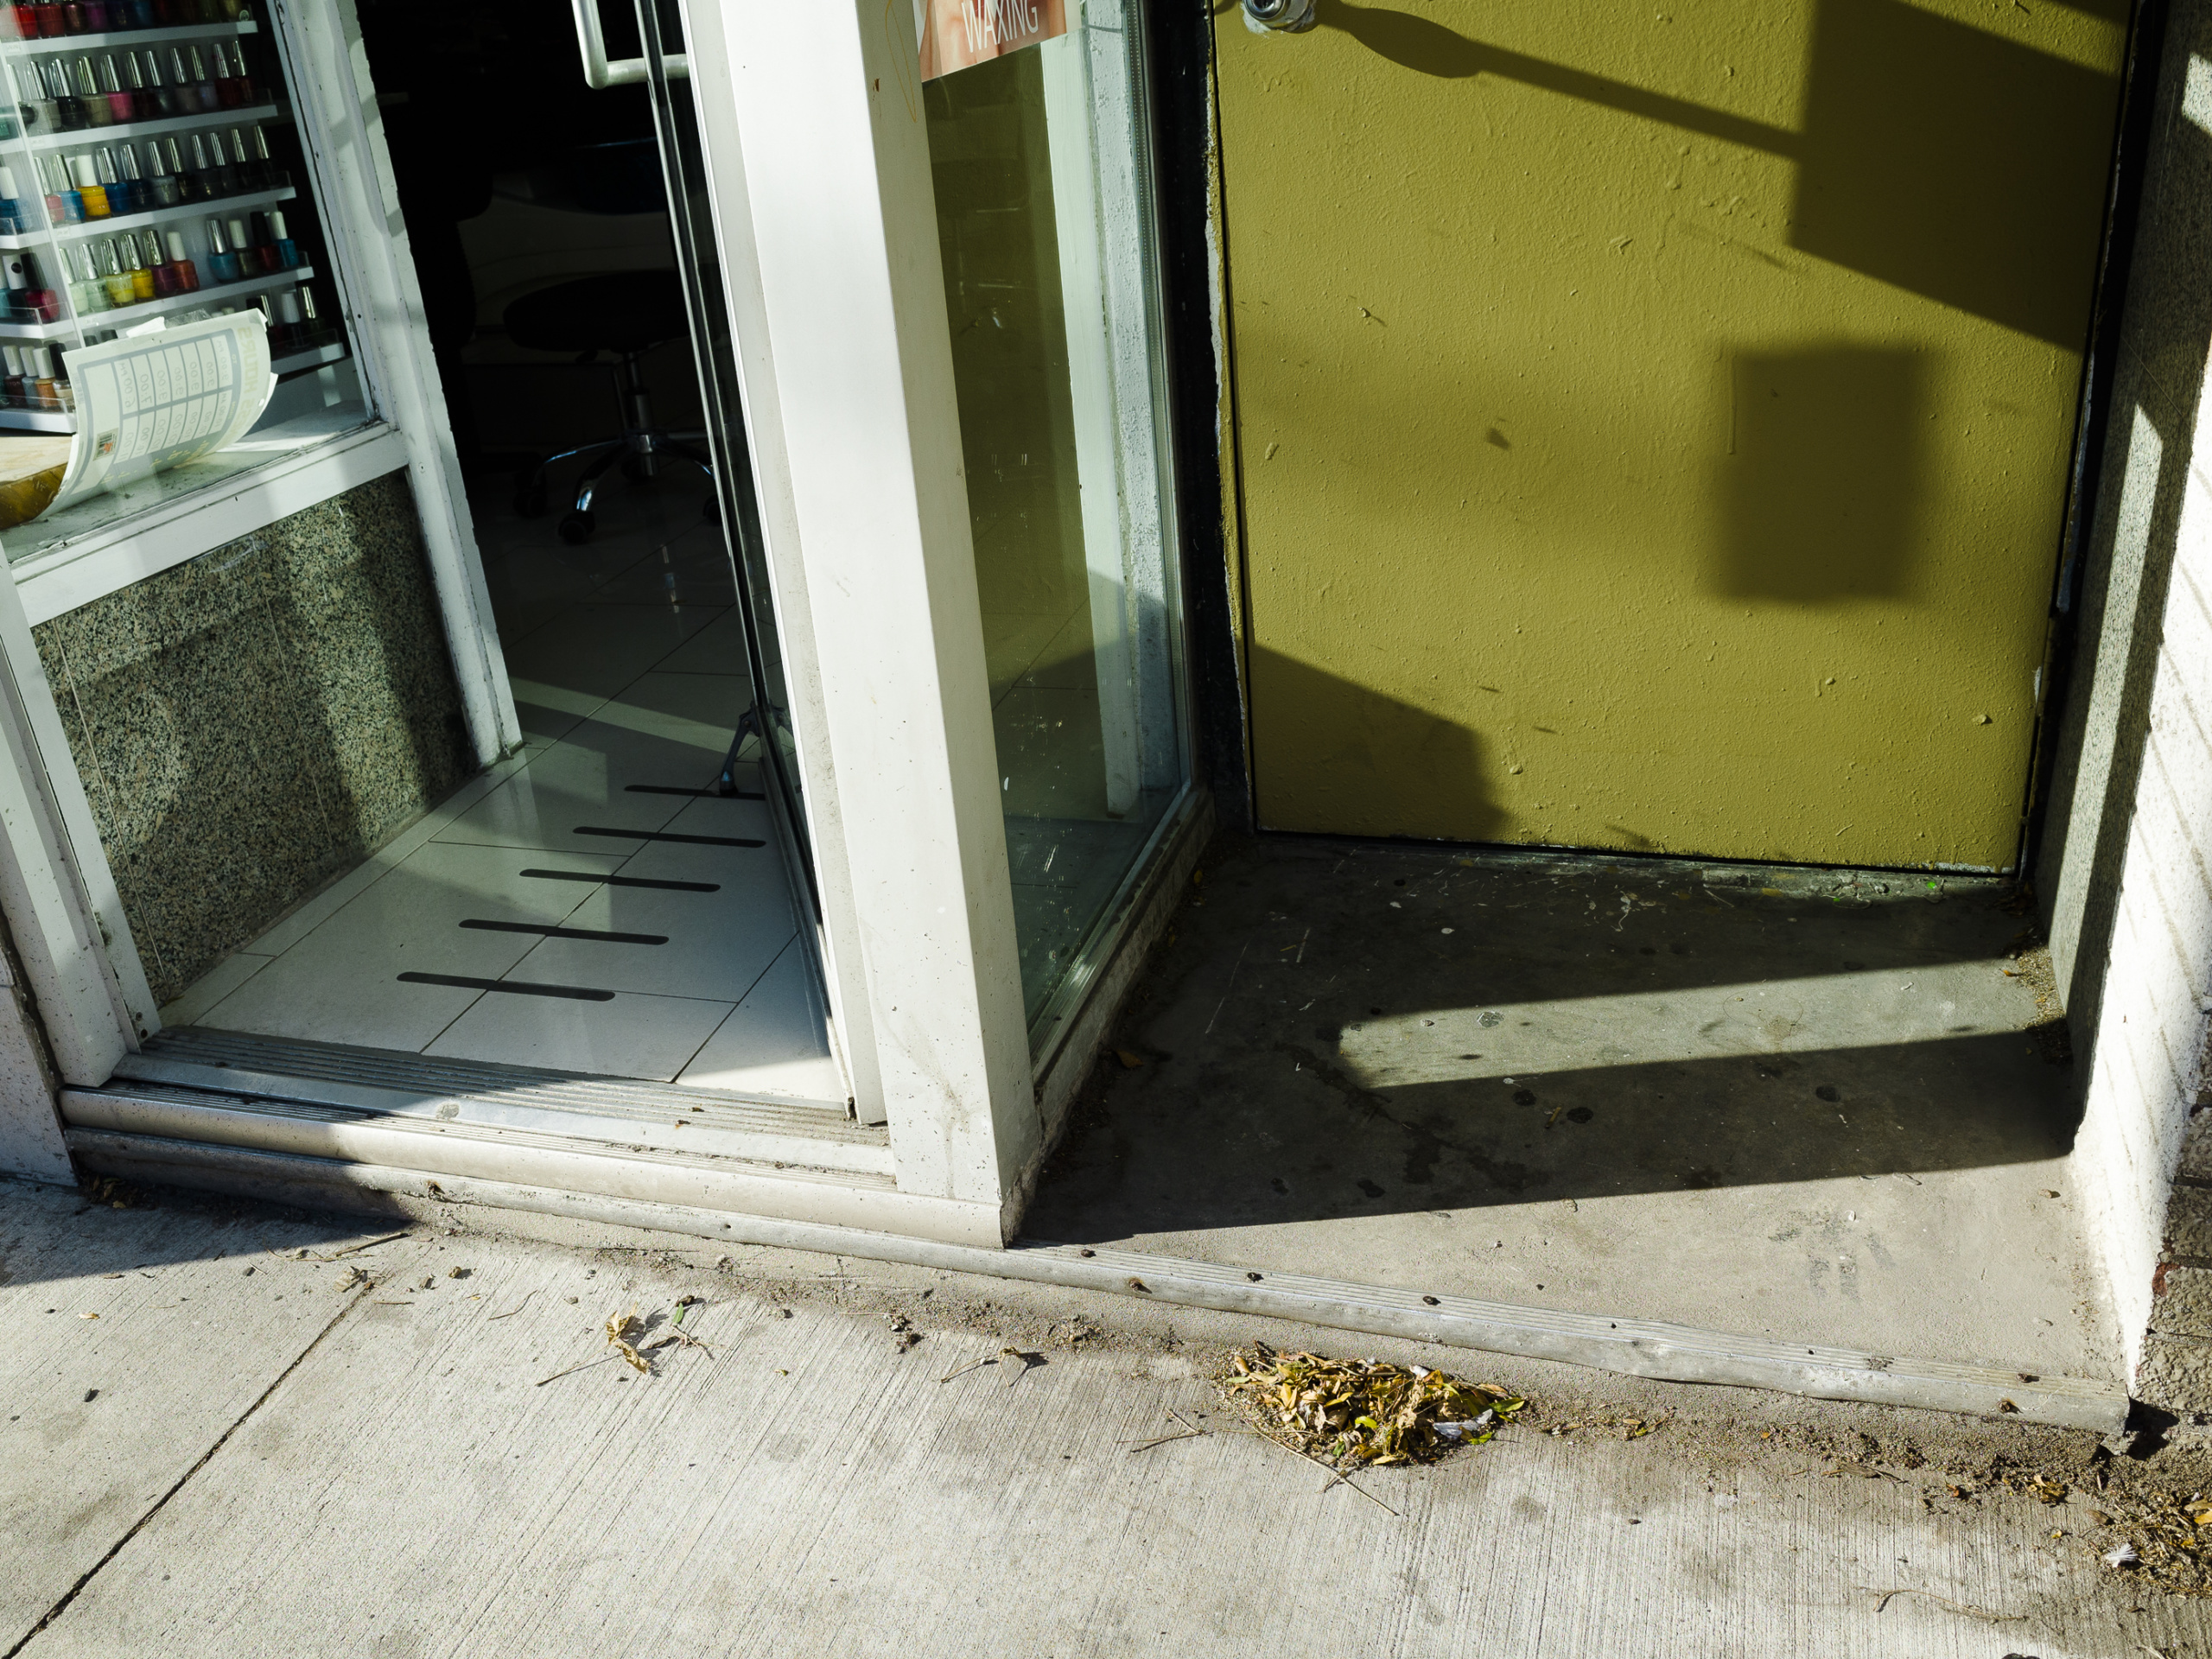 Atanas Bozdarov and Craig Rodmore, Every Step on Queen Street West (concrete, greenish-yellow door, nail polish), 2020